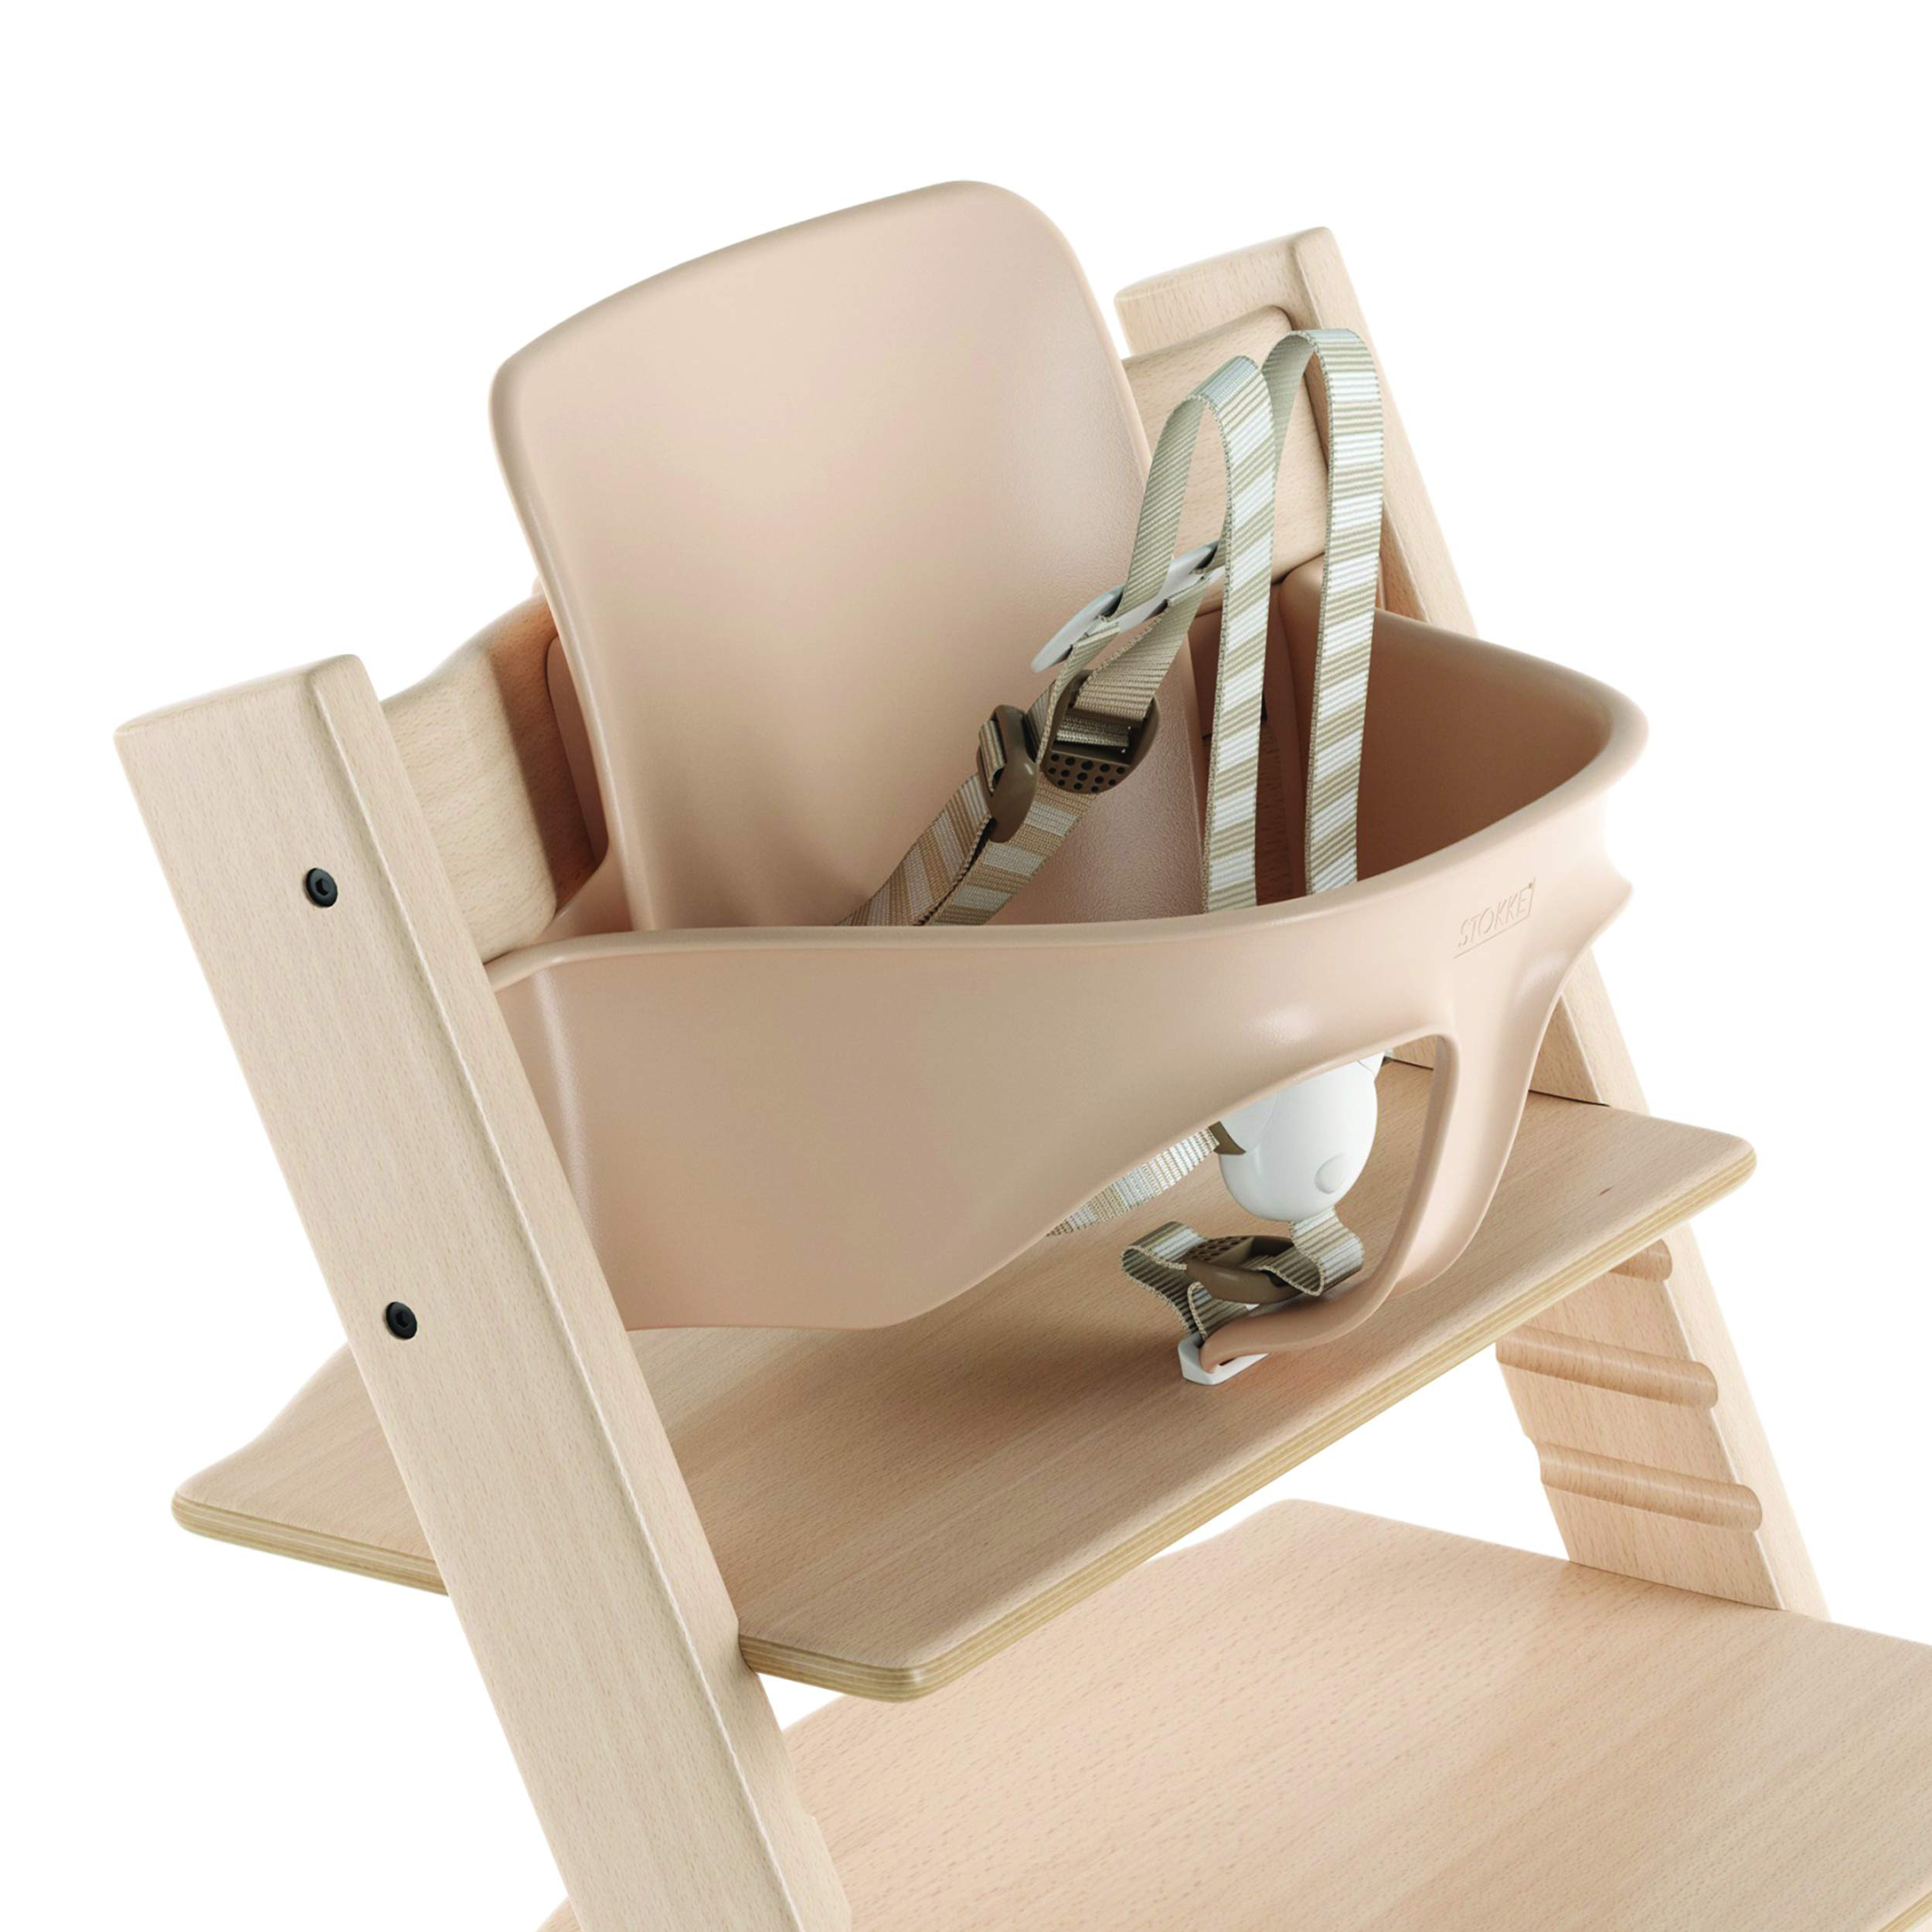 Stokke 2019 Tripp Trapp Baby Set, Includes Harness, Natural by Stokke